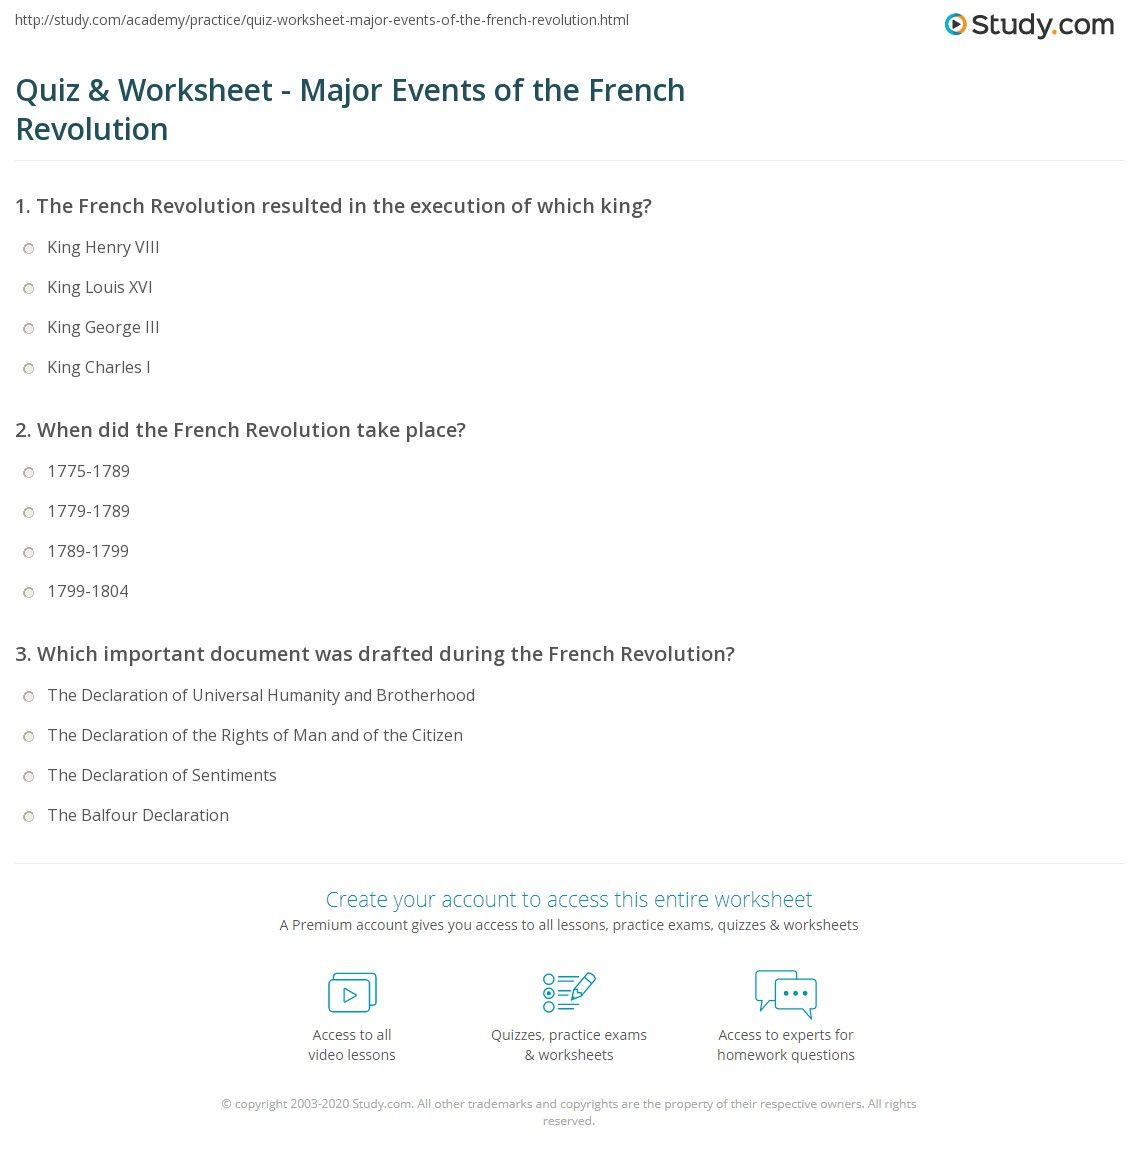 Quiz & Worksheet - Major Events of the French Revolution | Study.com